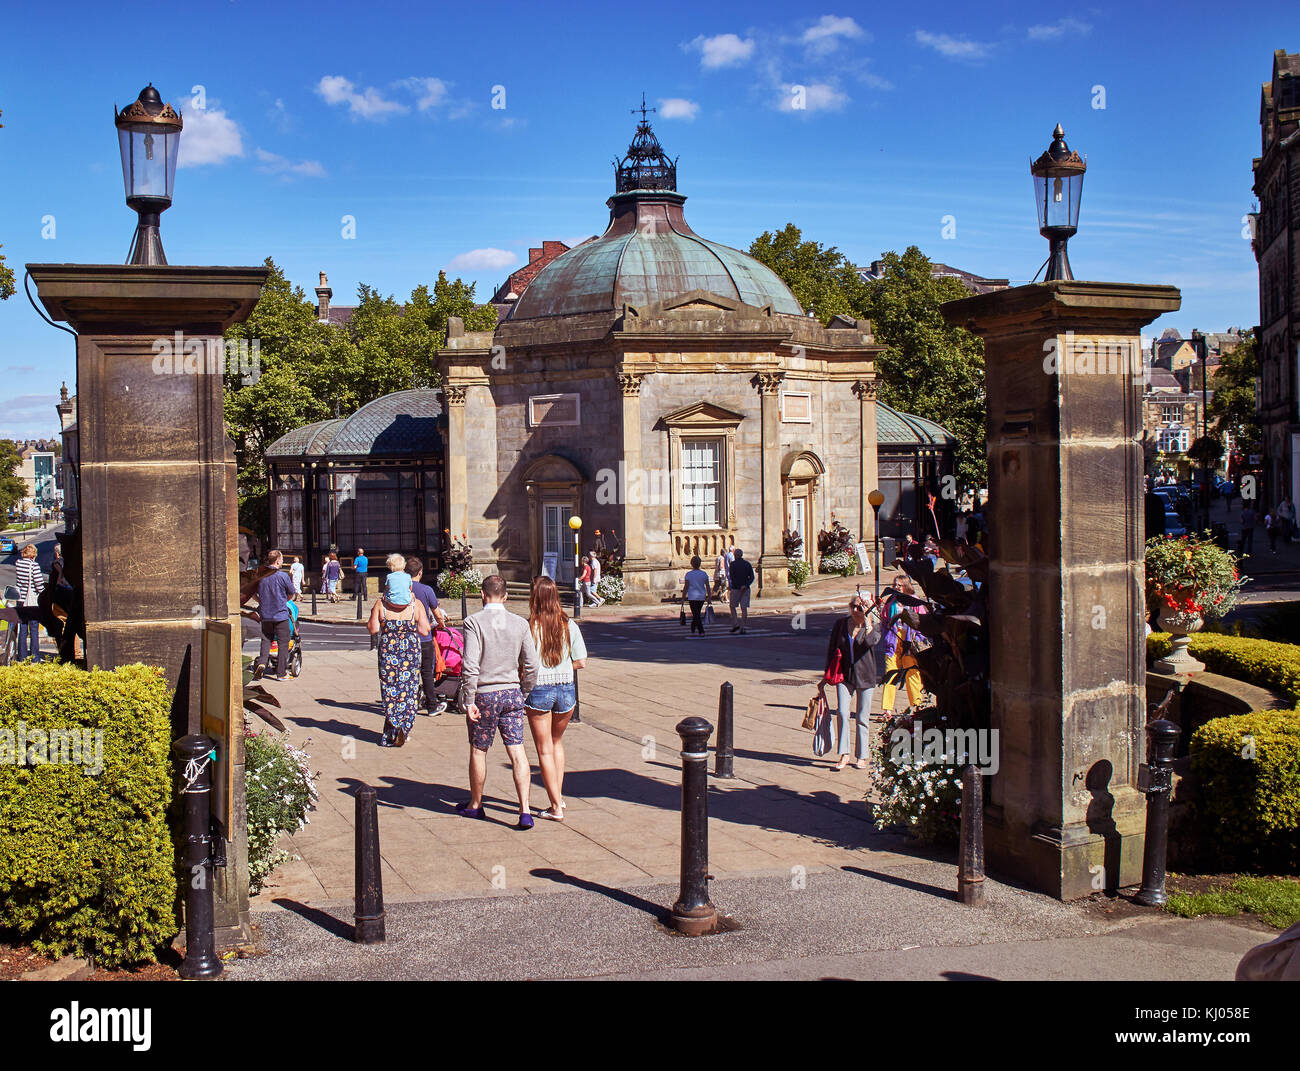 England, NorthYorkshire, Harrogate, spa town, Montpellier Quarter,Exterior of the Royal Pump Room Museum housed - Stock Image